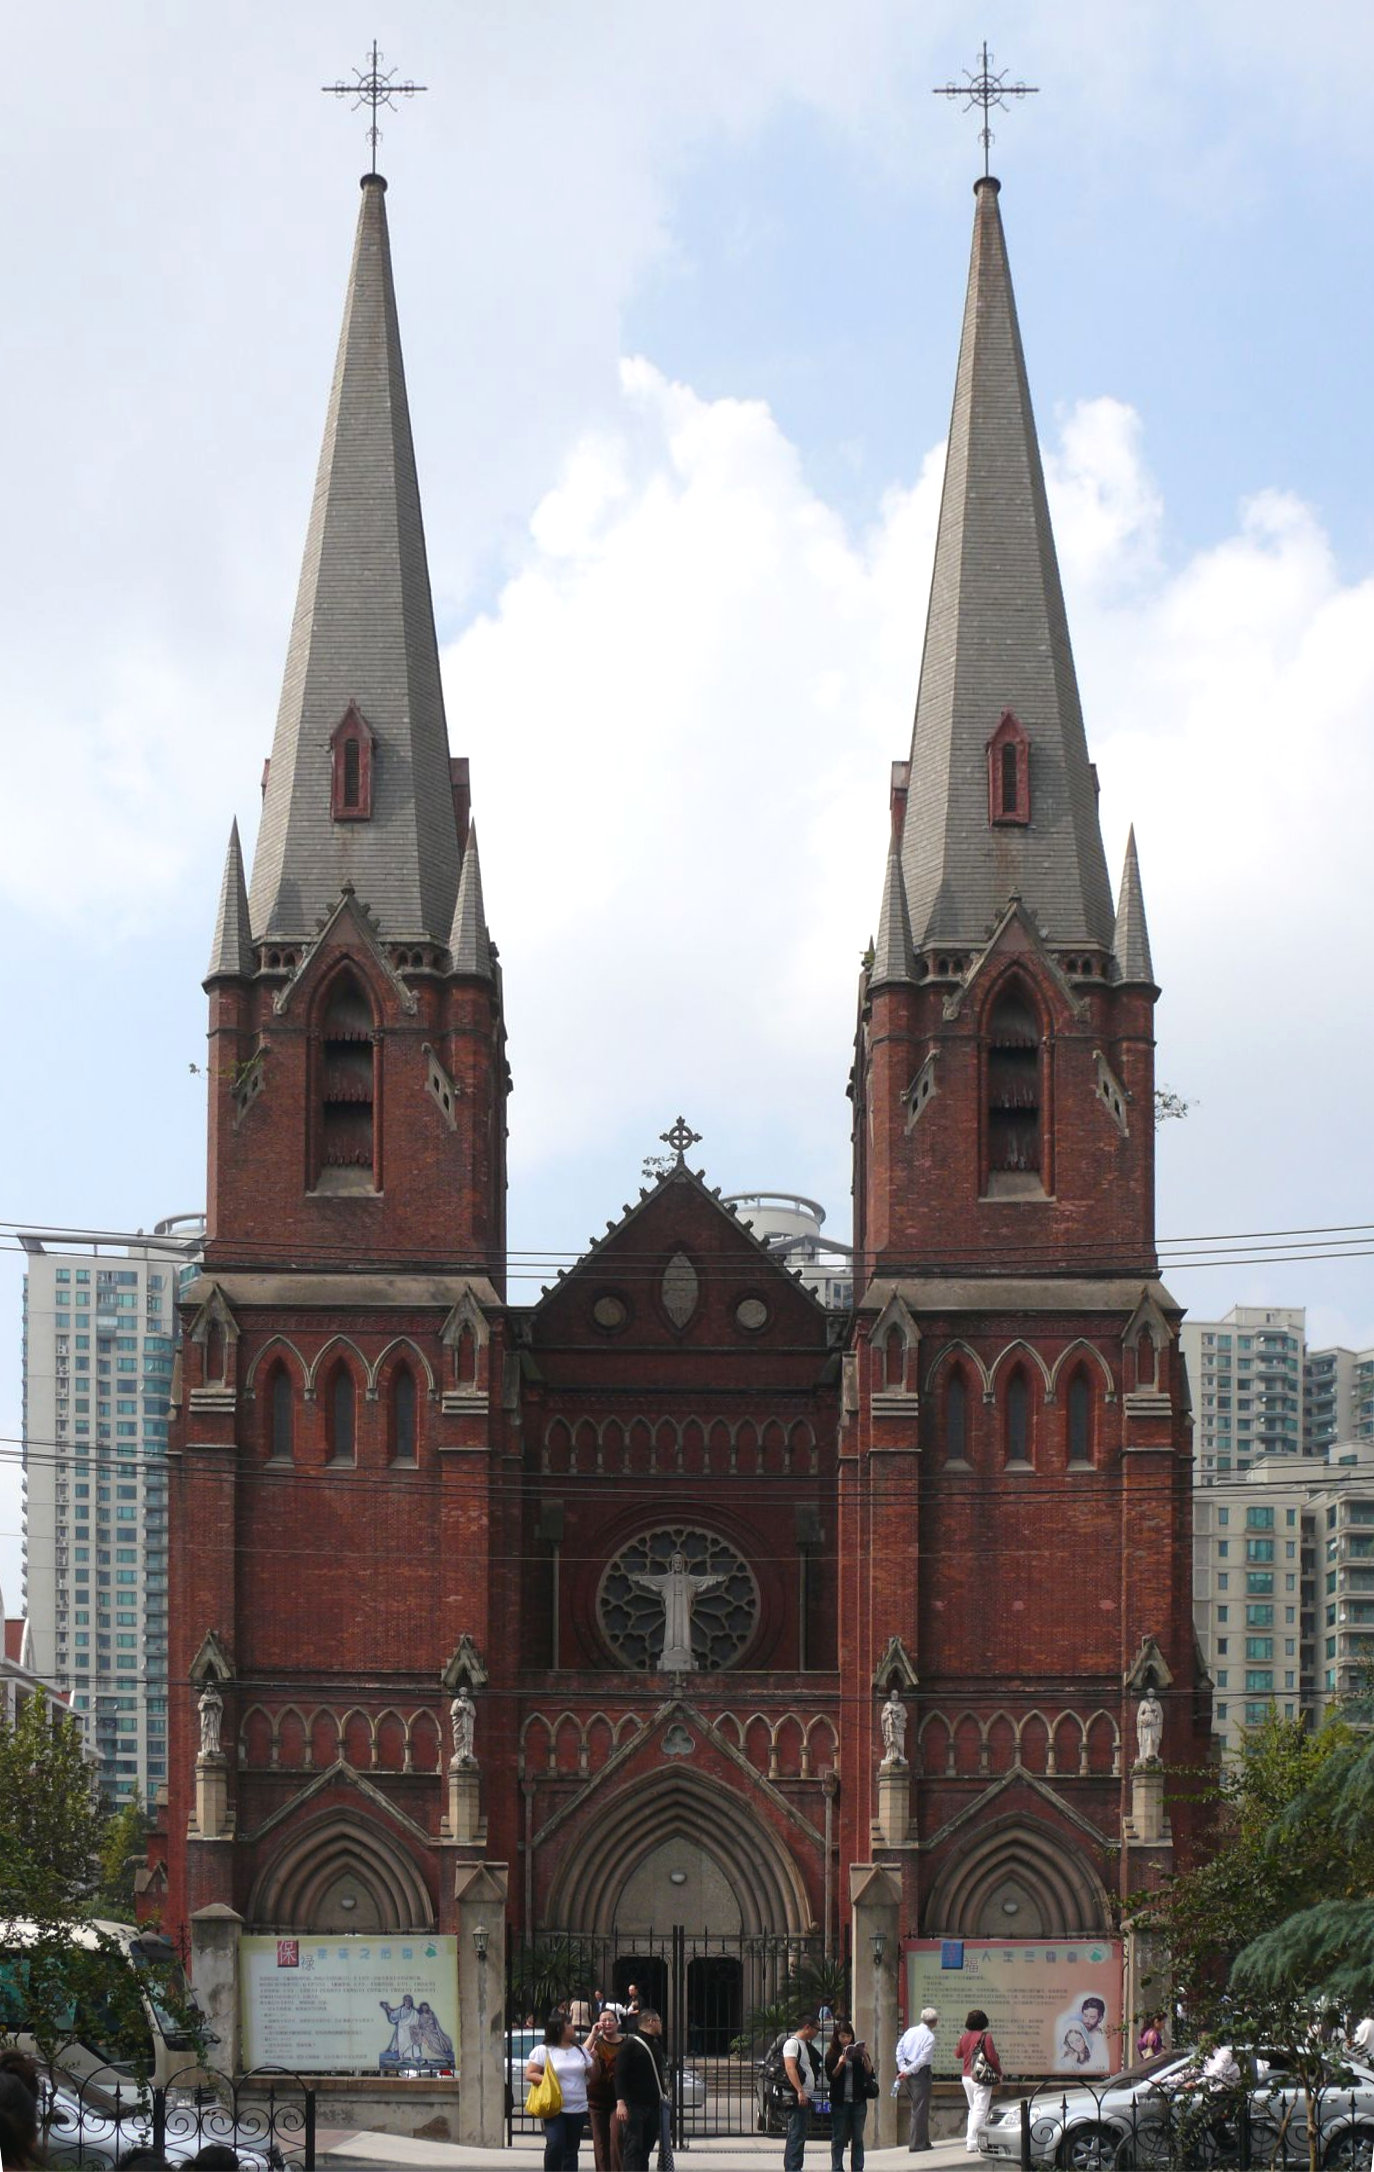 http://upload.wikimedia.org/wikipedia/commons/2/24/Saint-Ignatius_cathedral_of_Shanghai.jpg